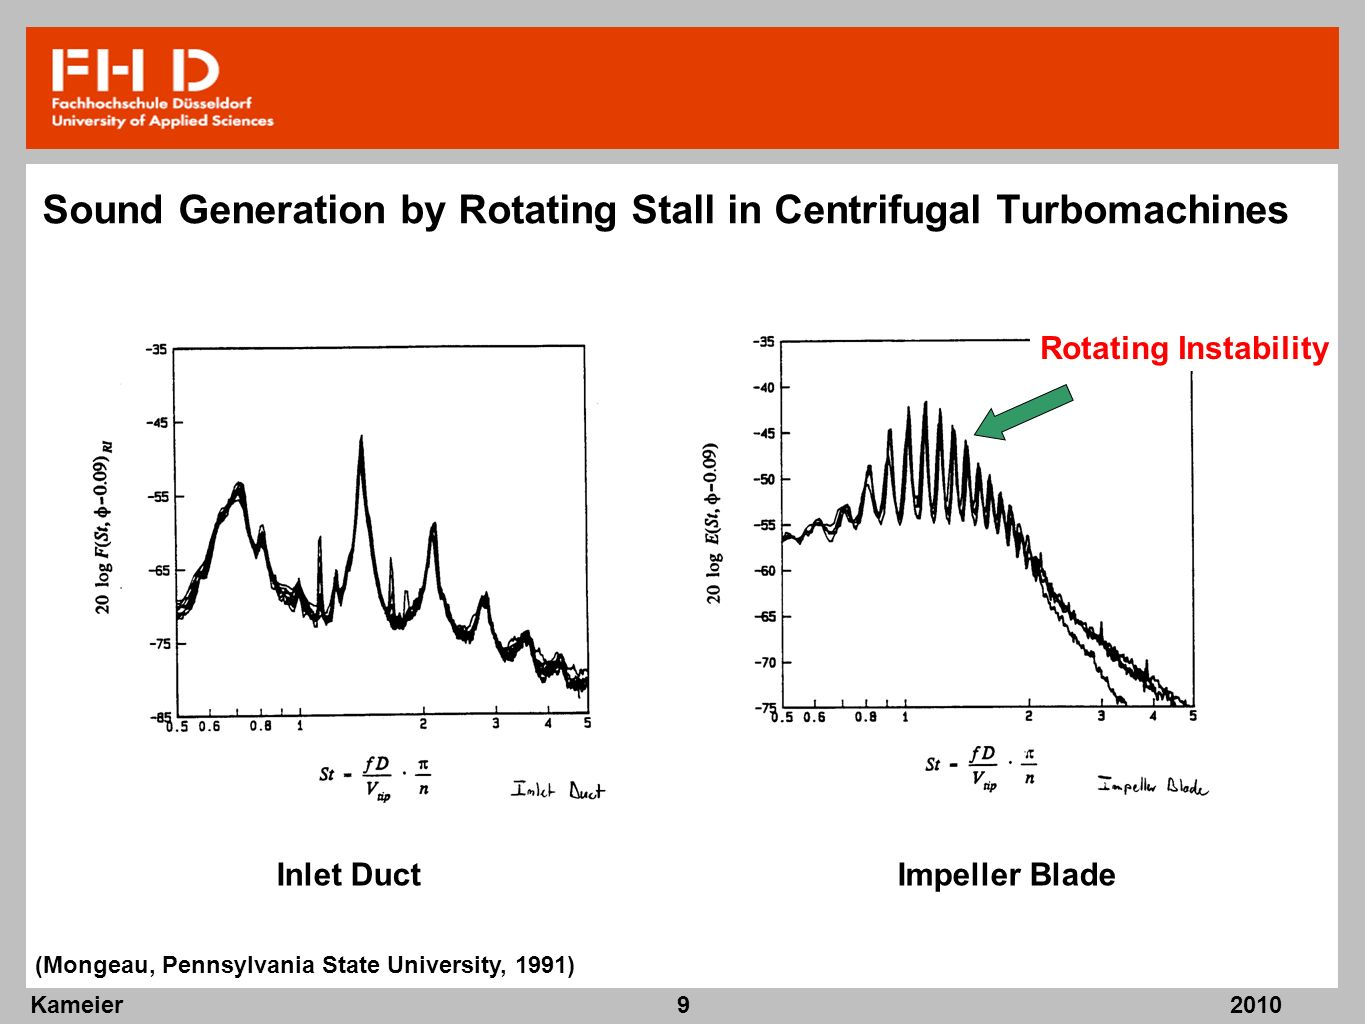 Sound Generation by Rotating Stall in Centrifugal Turbomachines